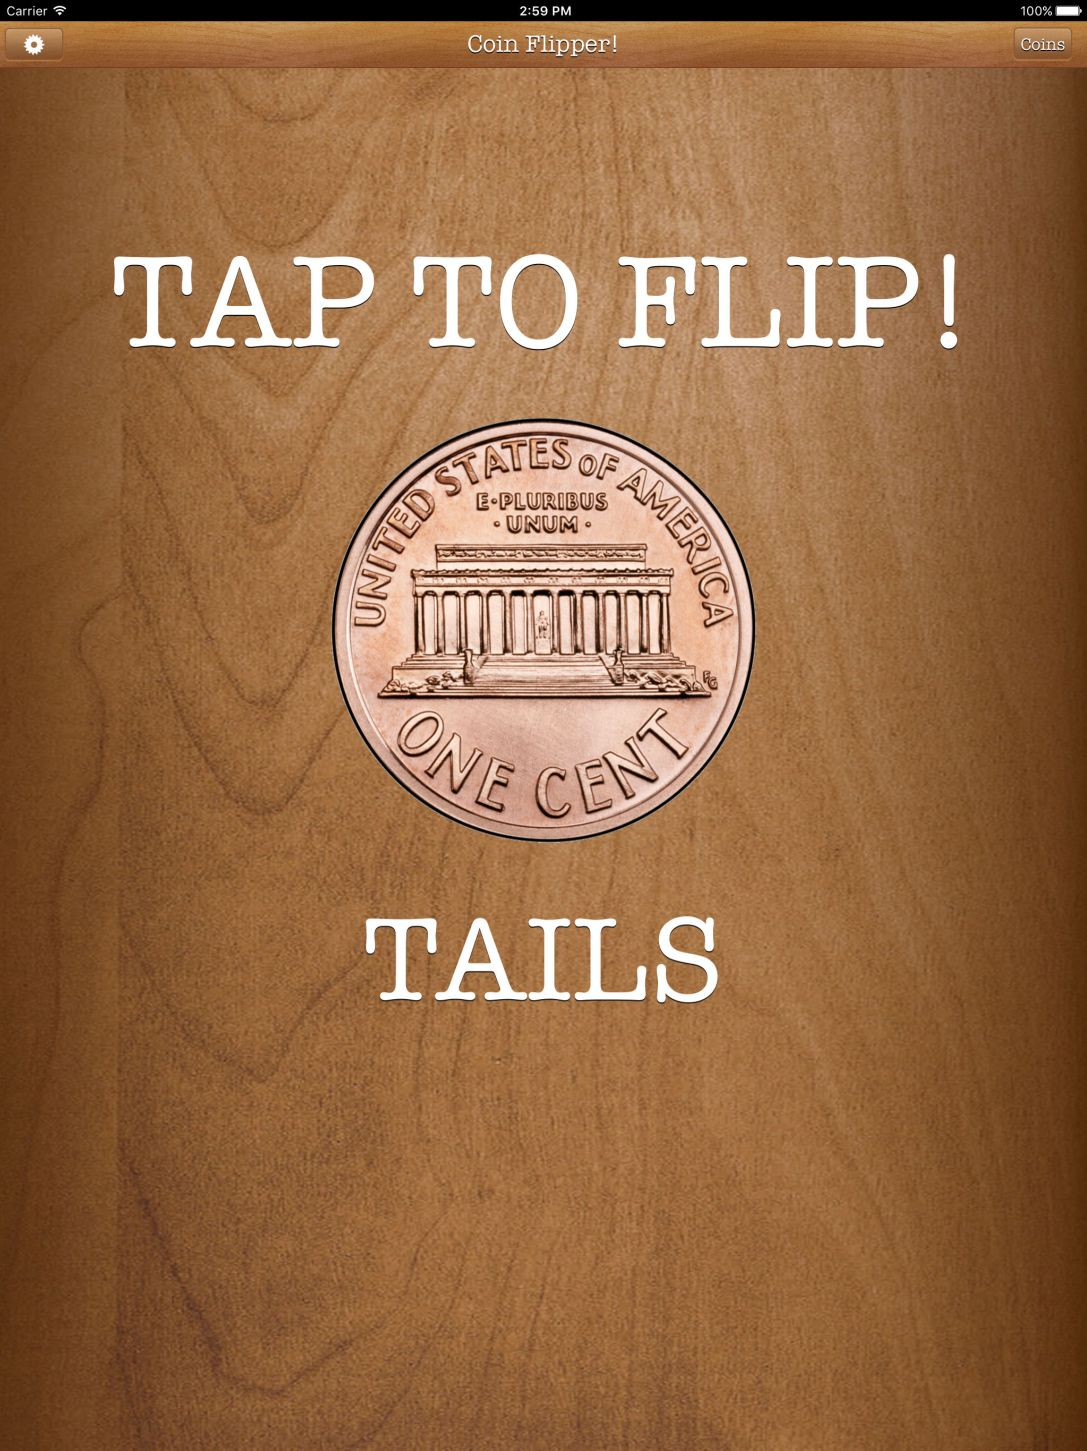 Flip a Coin App iPad Pro screenshot penny on tails.